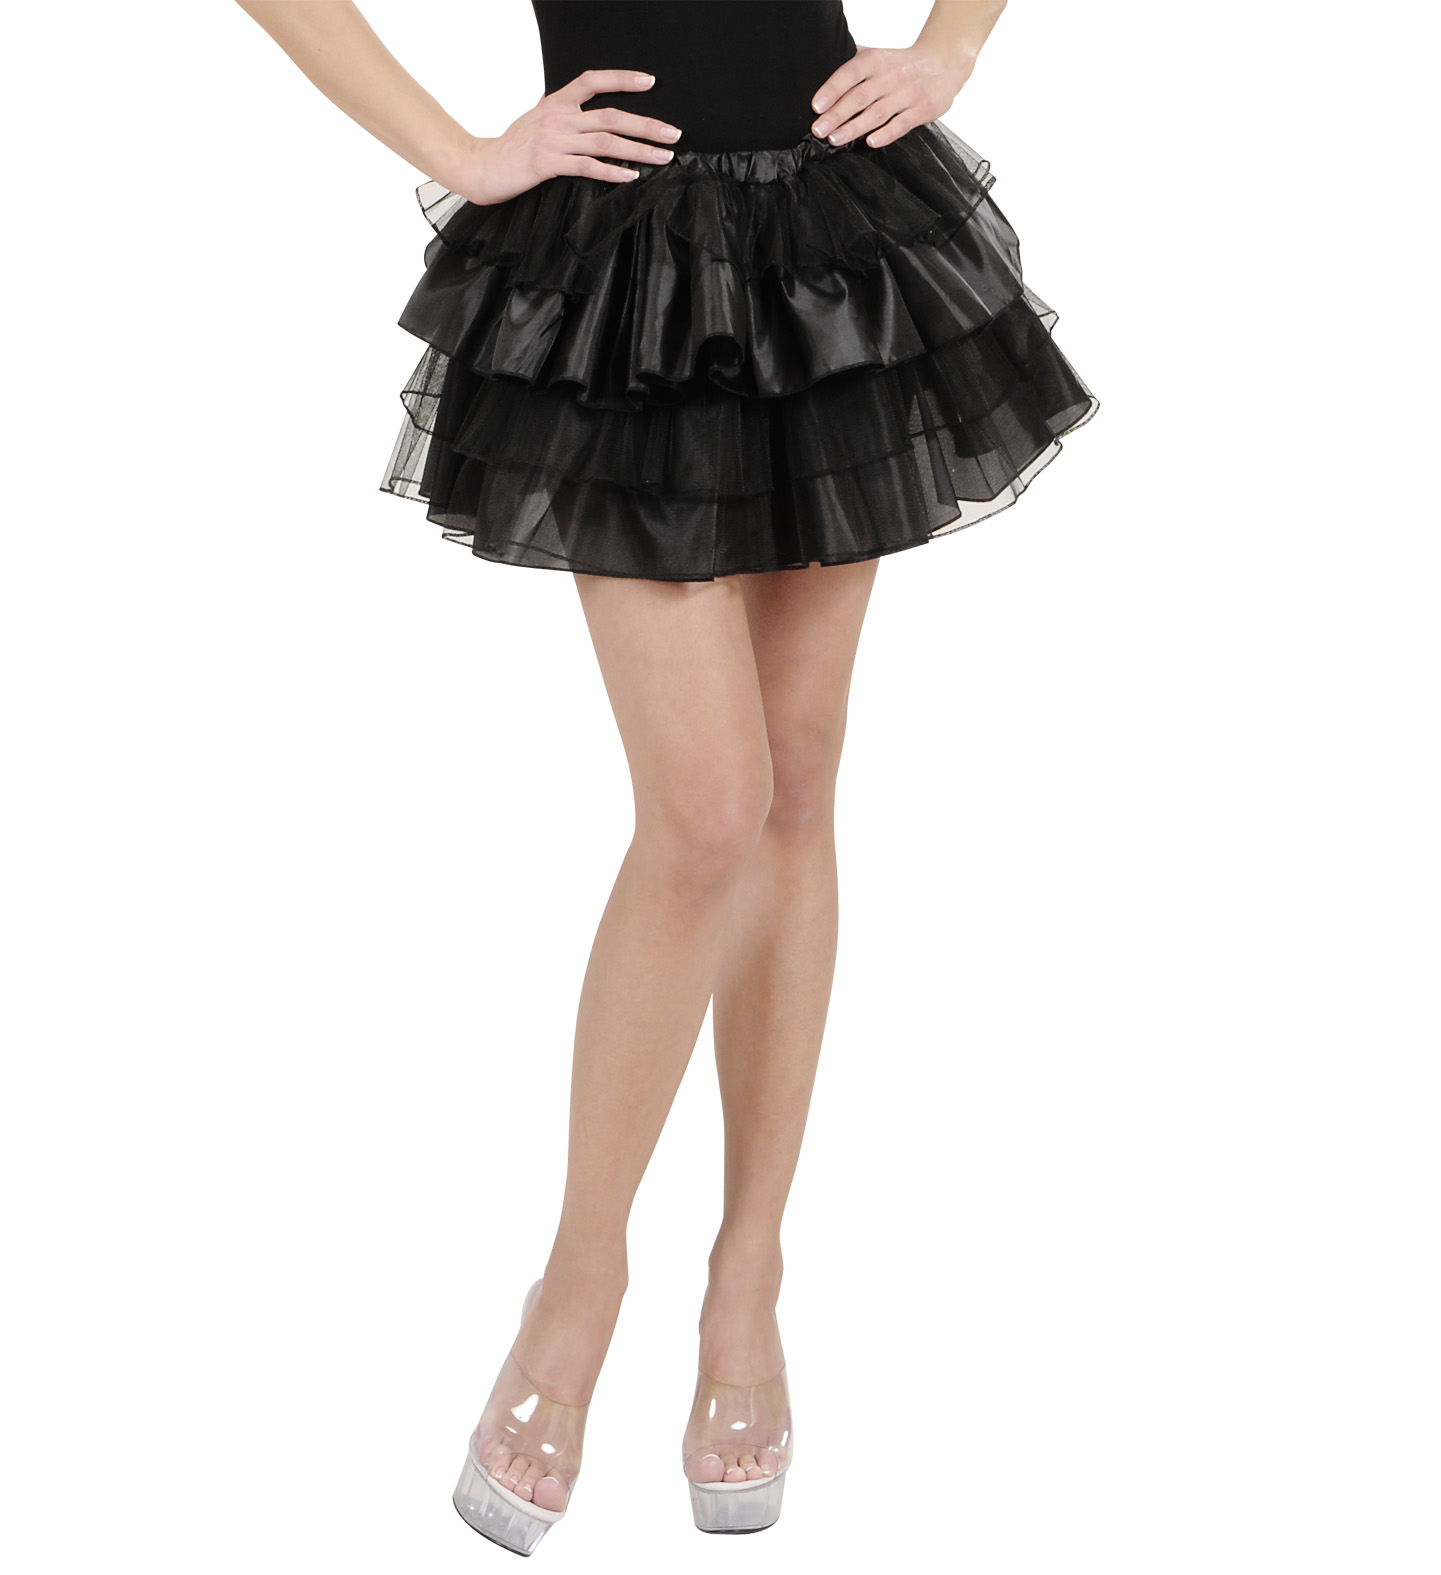 Fantasy Tutus - Adult Size - Tutu Rara Skirt Fancy Dress